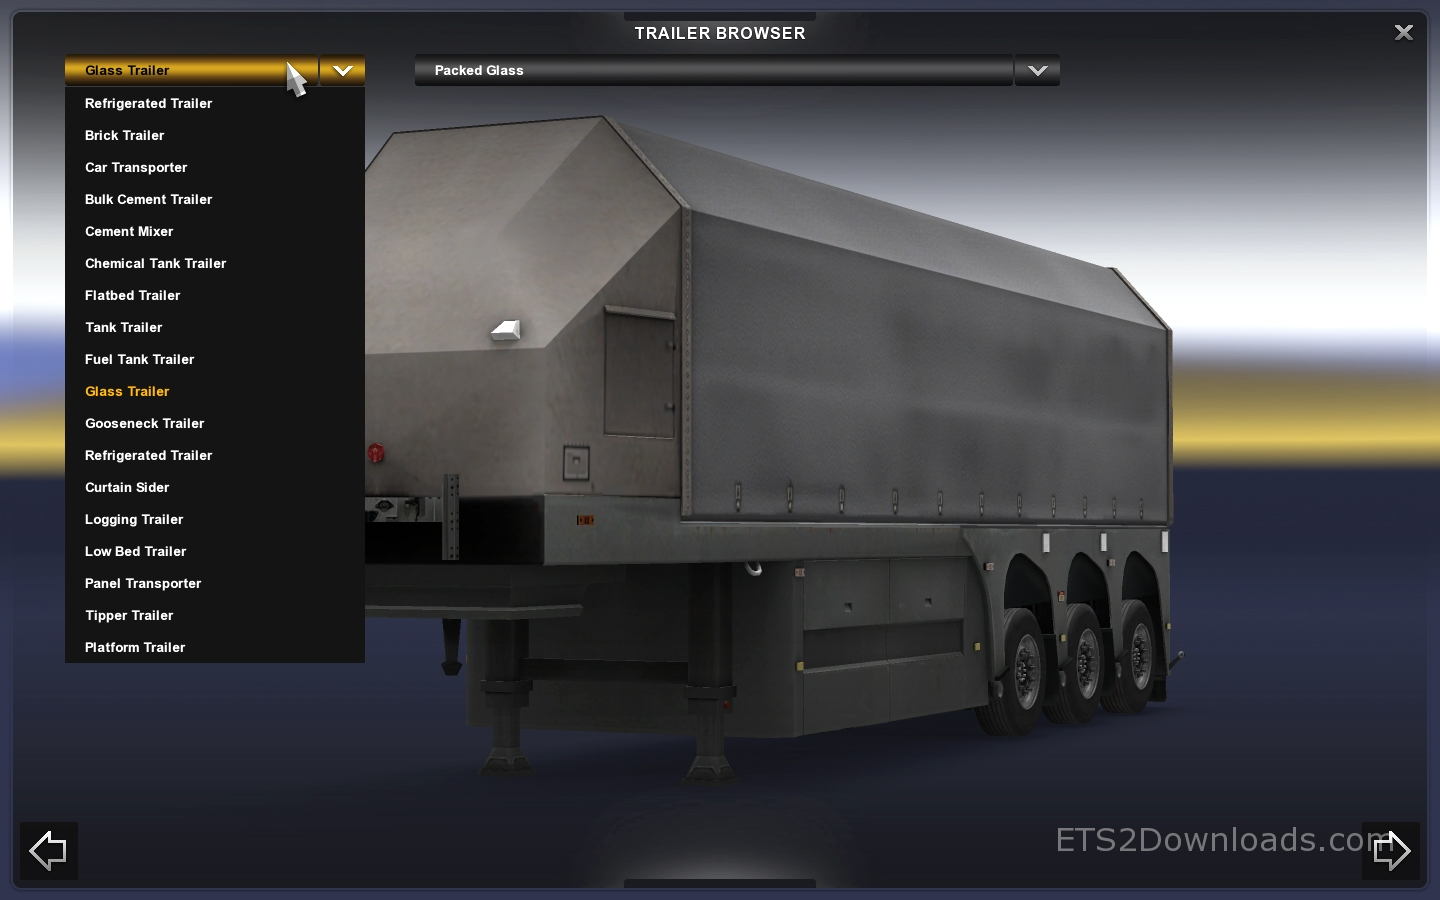 trailer-browser-ets2